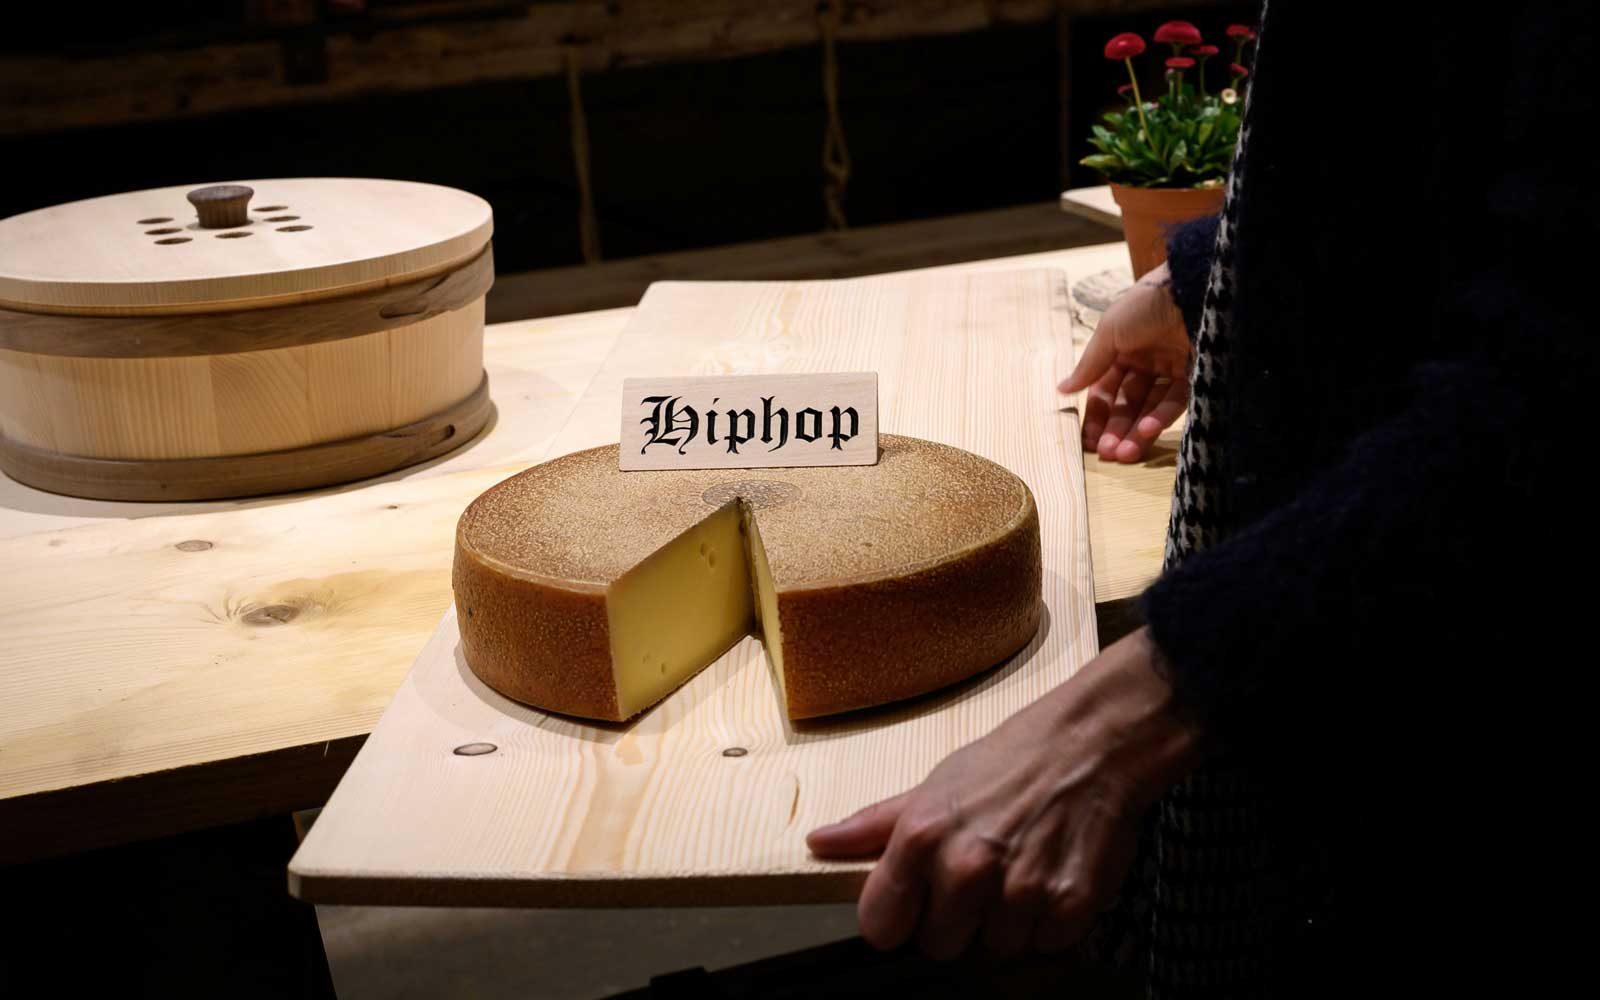 Cheese Tastes Better If It's Been Aged to Hip Hop, Swiss Cheesemakers Find